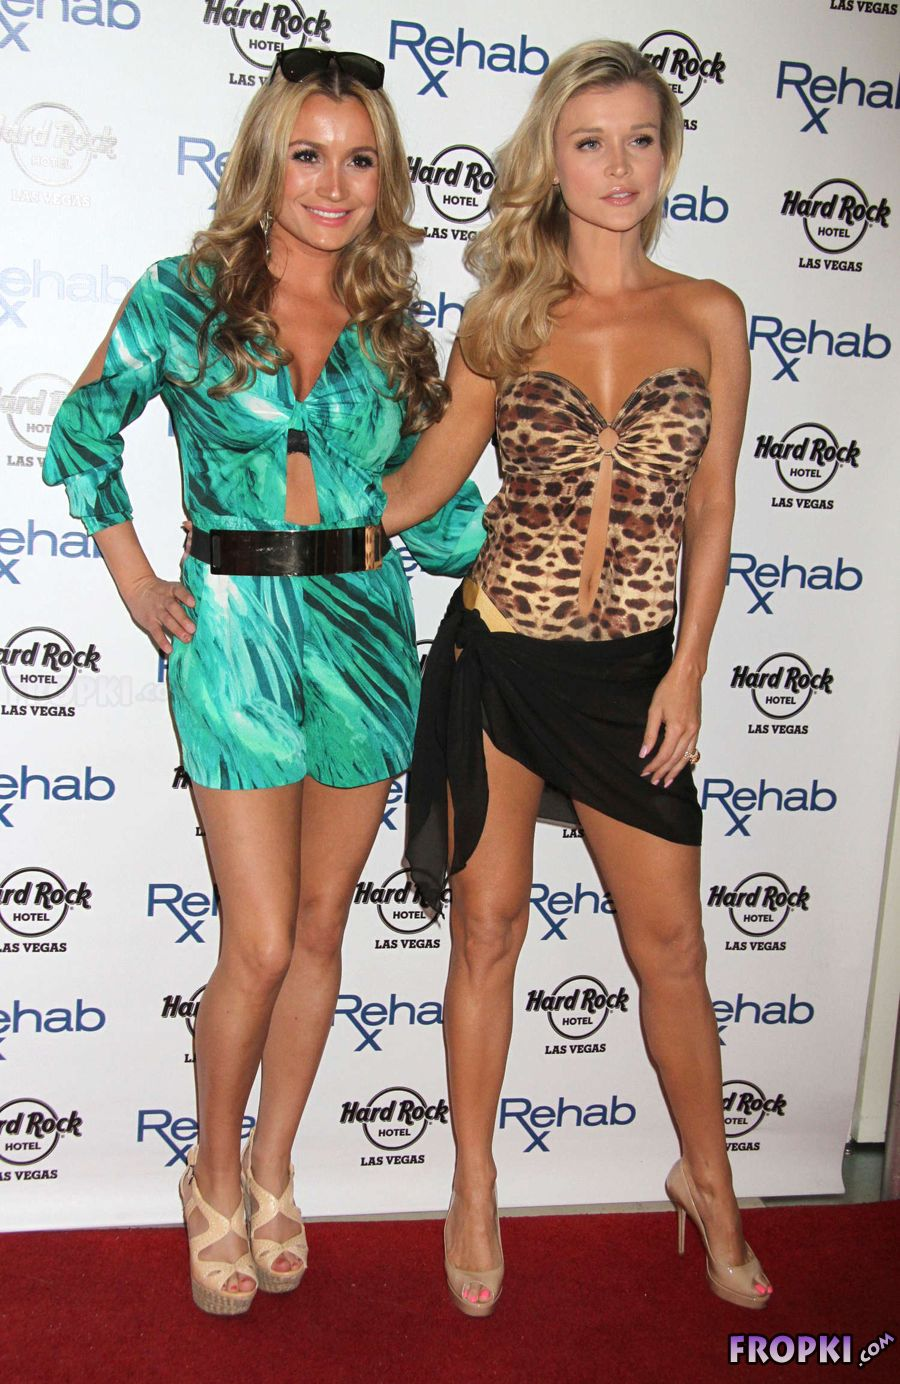 Joanna Krupa - Rehab Pool Party at Casino in Vegas